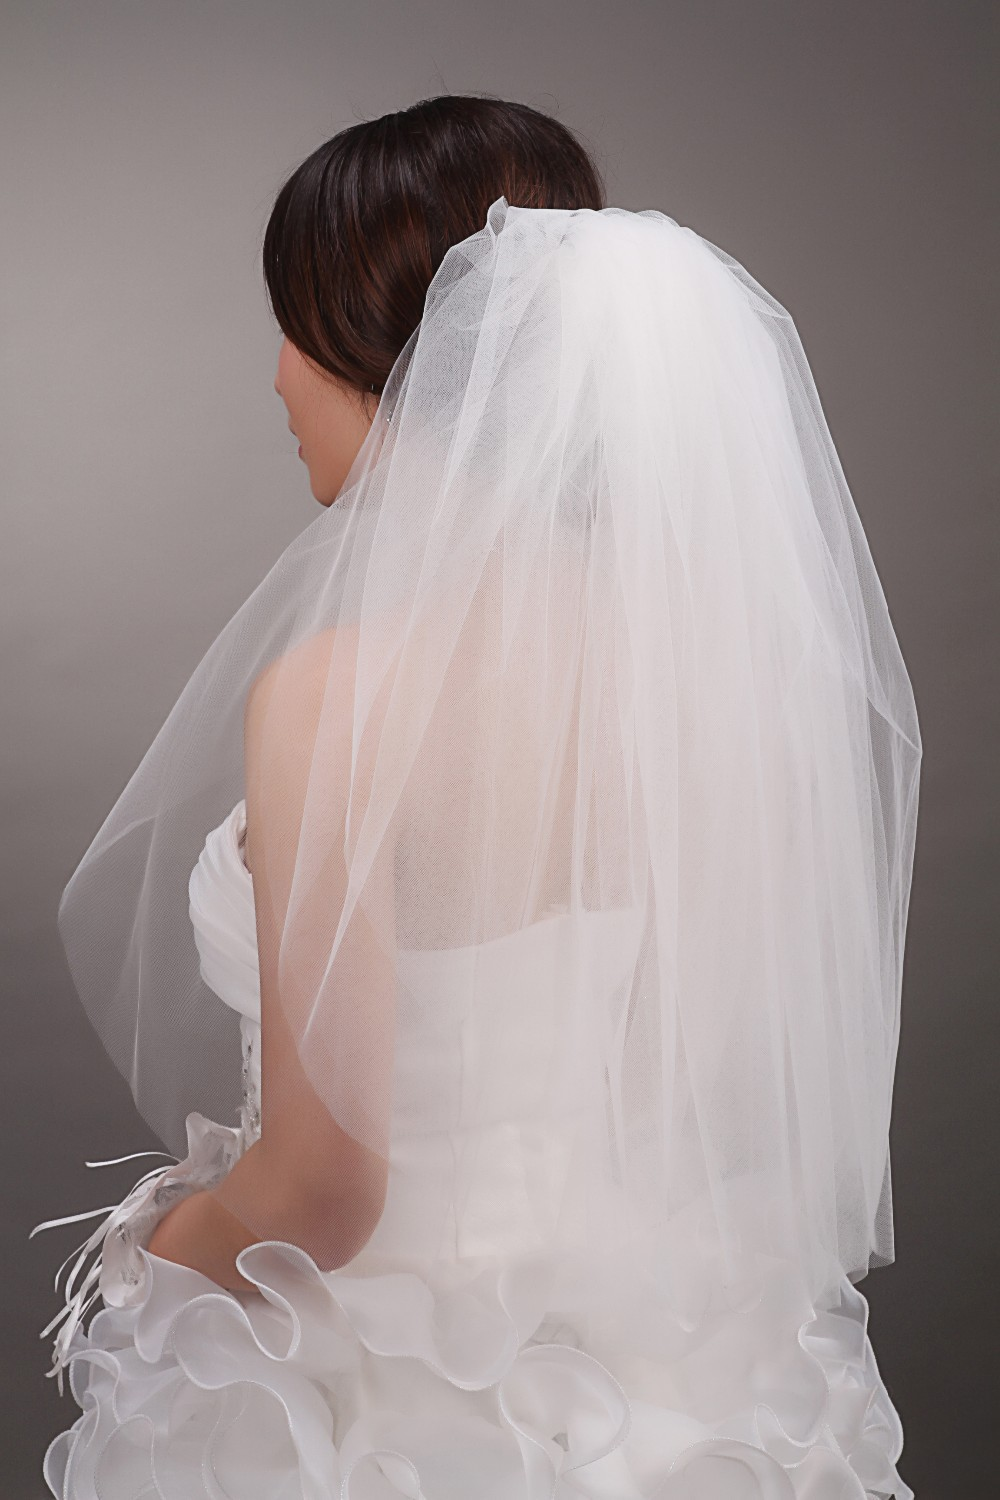 Cheap Short Wedding Veils White/Ivory Two Layer Tulle Bridal Accessories - Weddings & Events Collection store